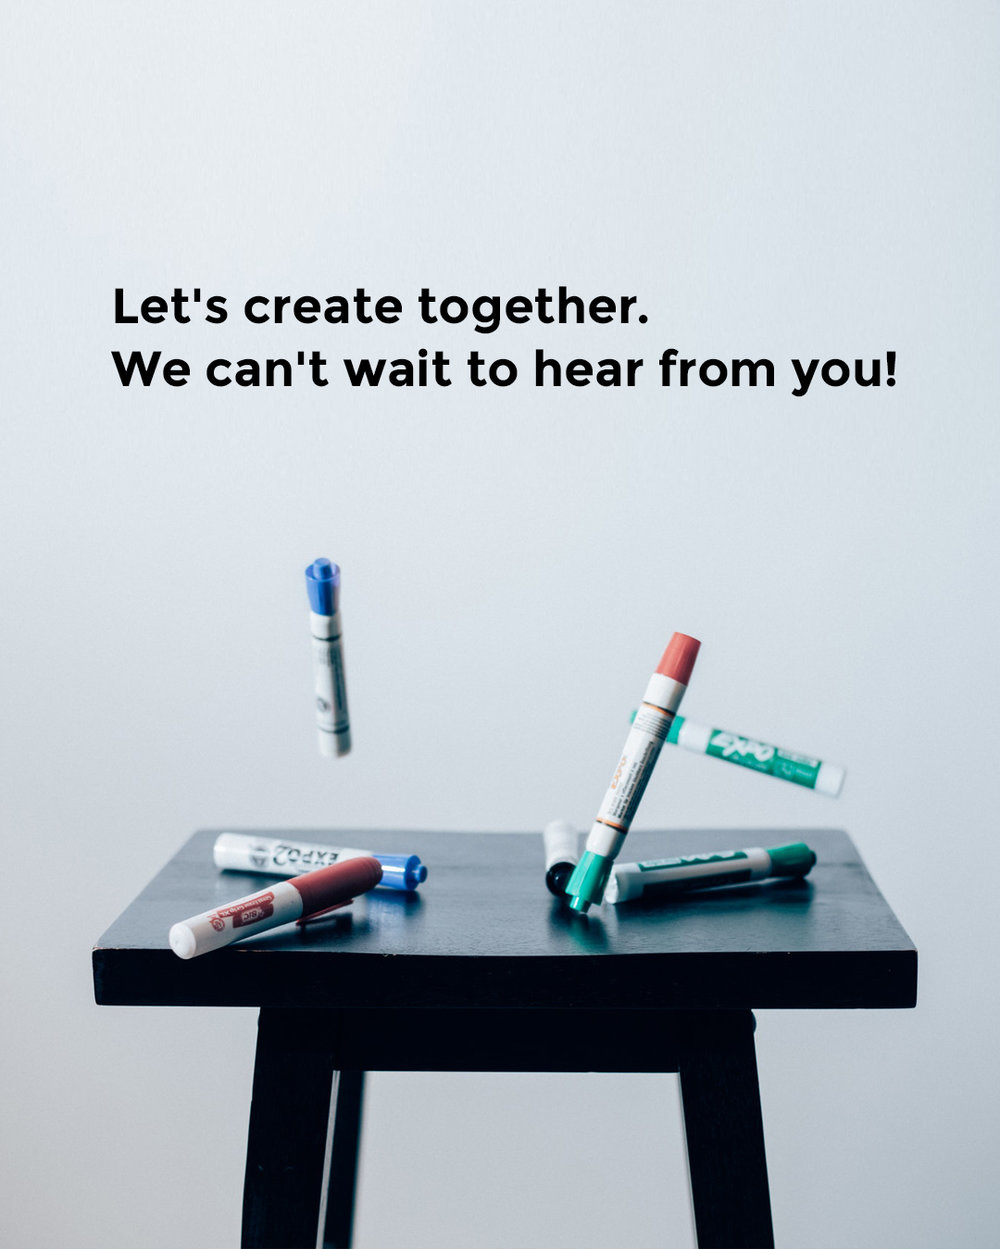 let's-create-together